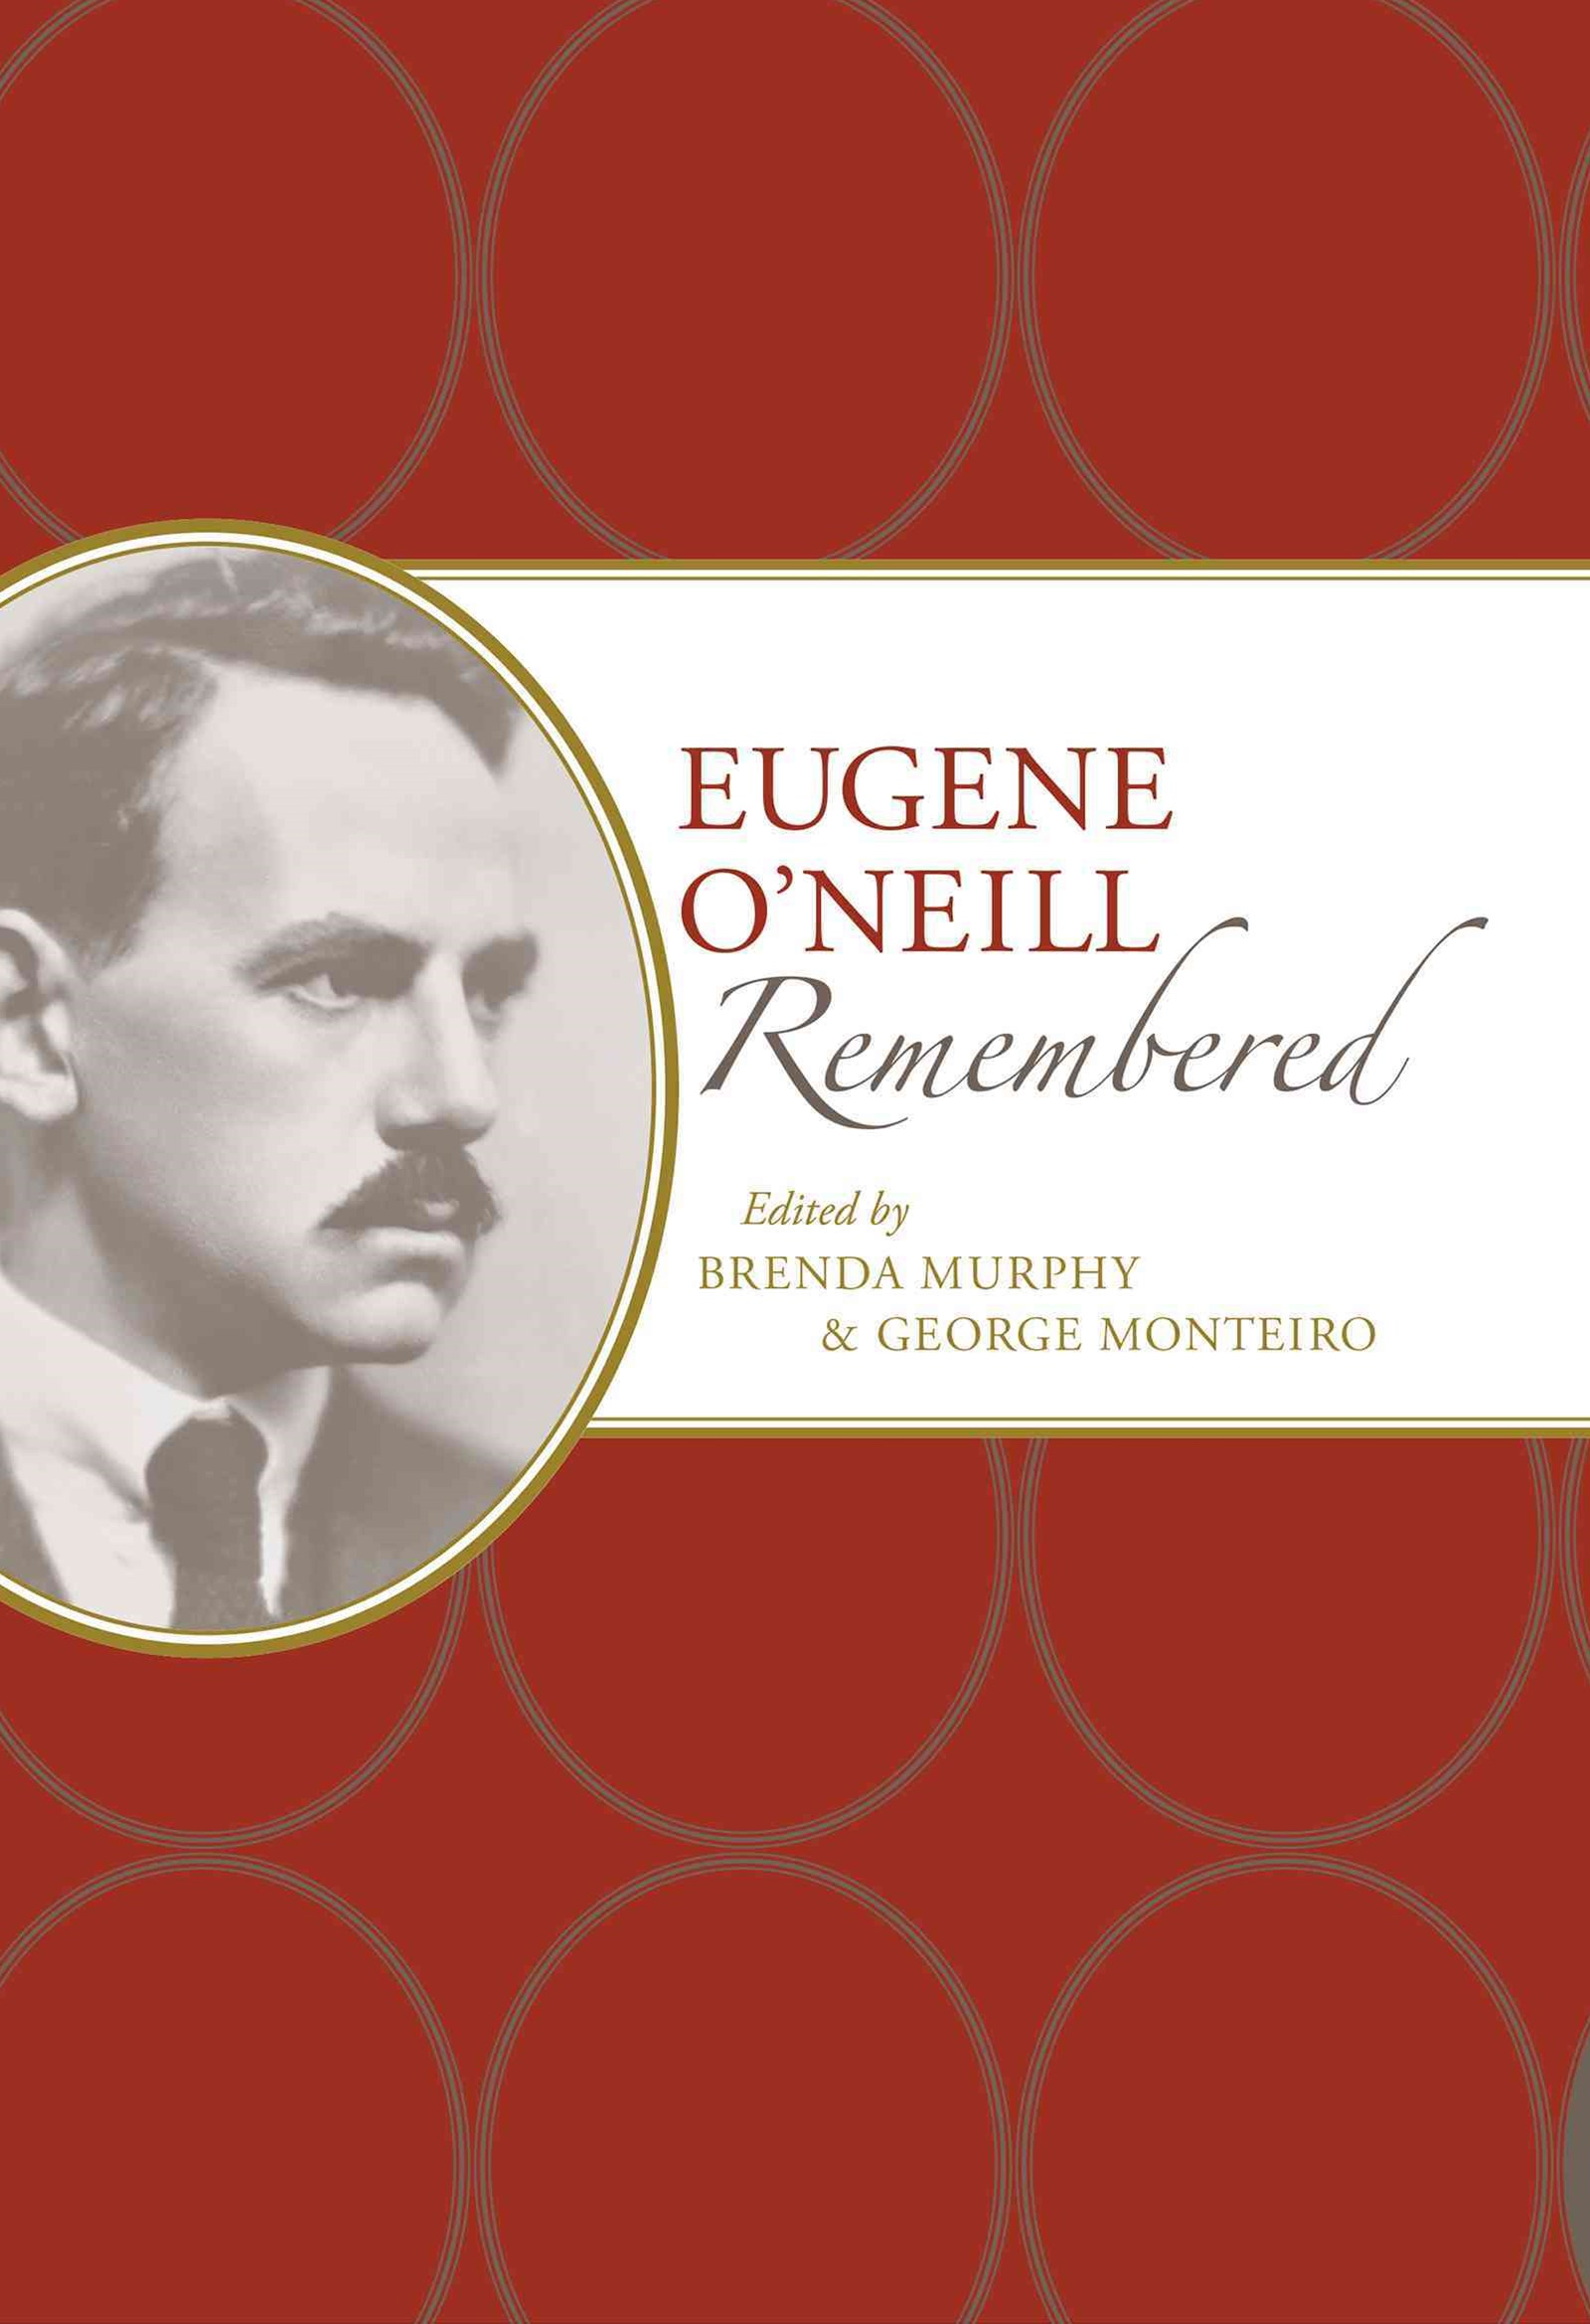 Eugene O'Neill Remembered